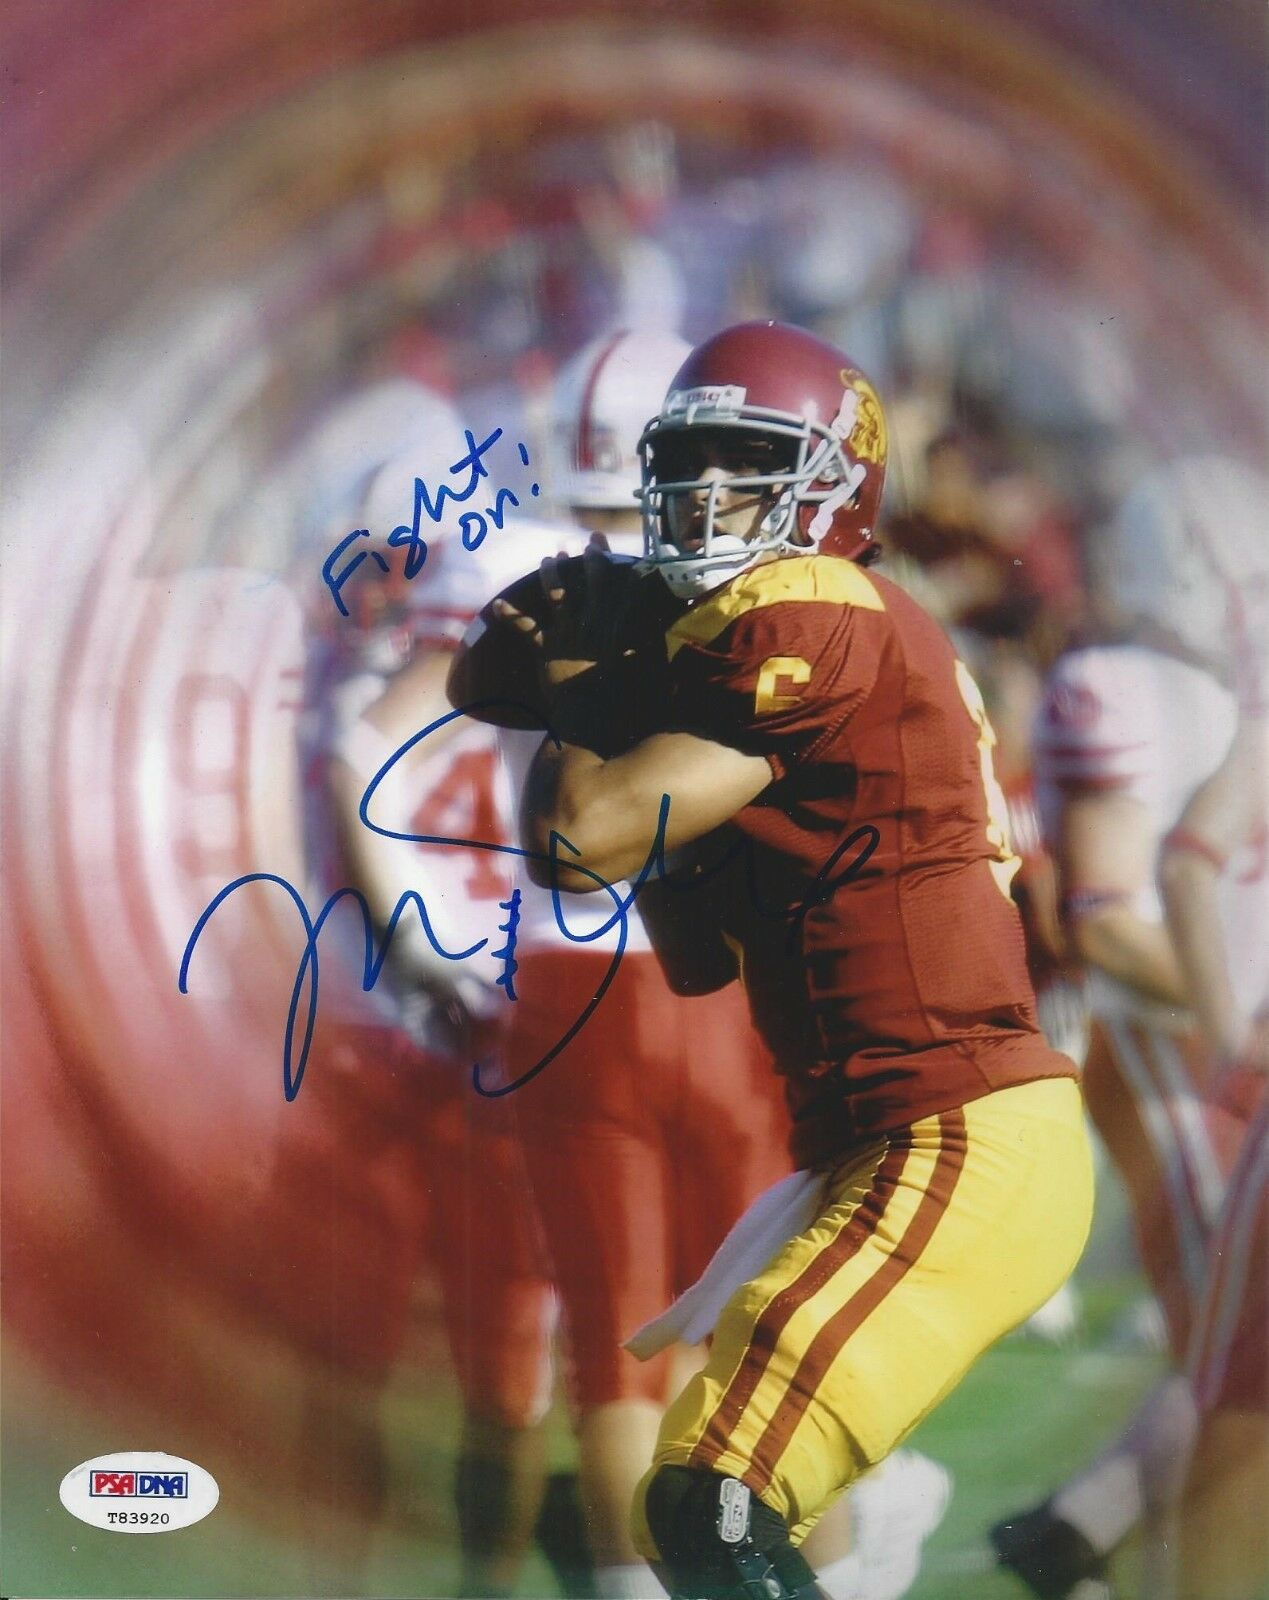 Mark Sanchez Of The USC Trojans Signed 8x10 Photo - PSA/DNA # T83920